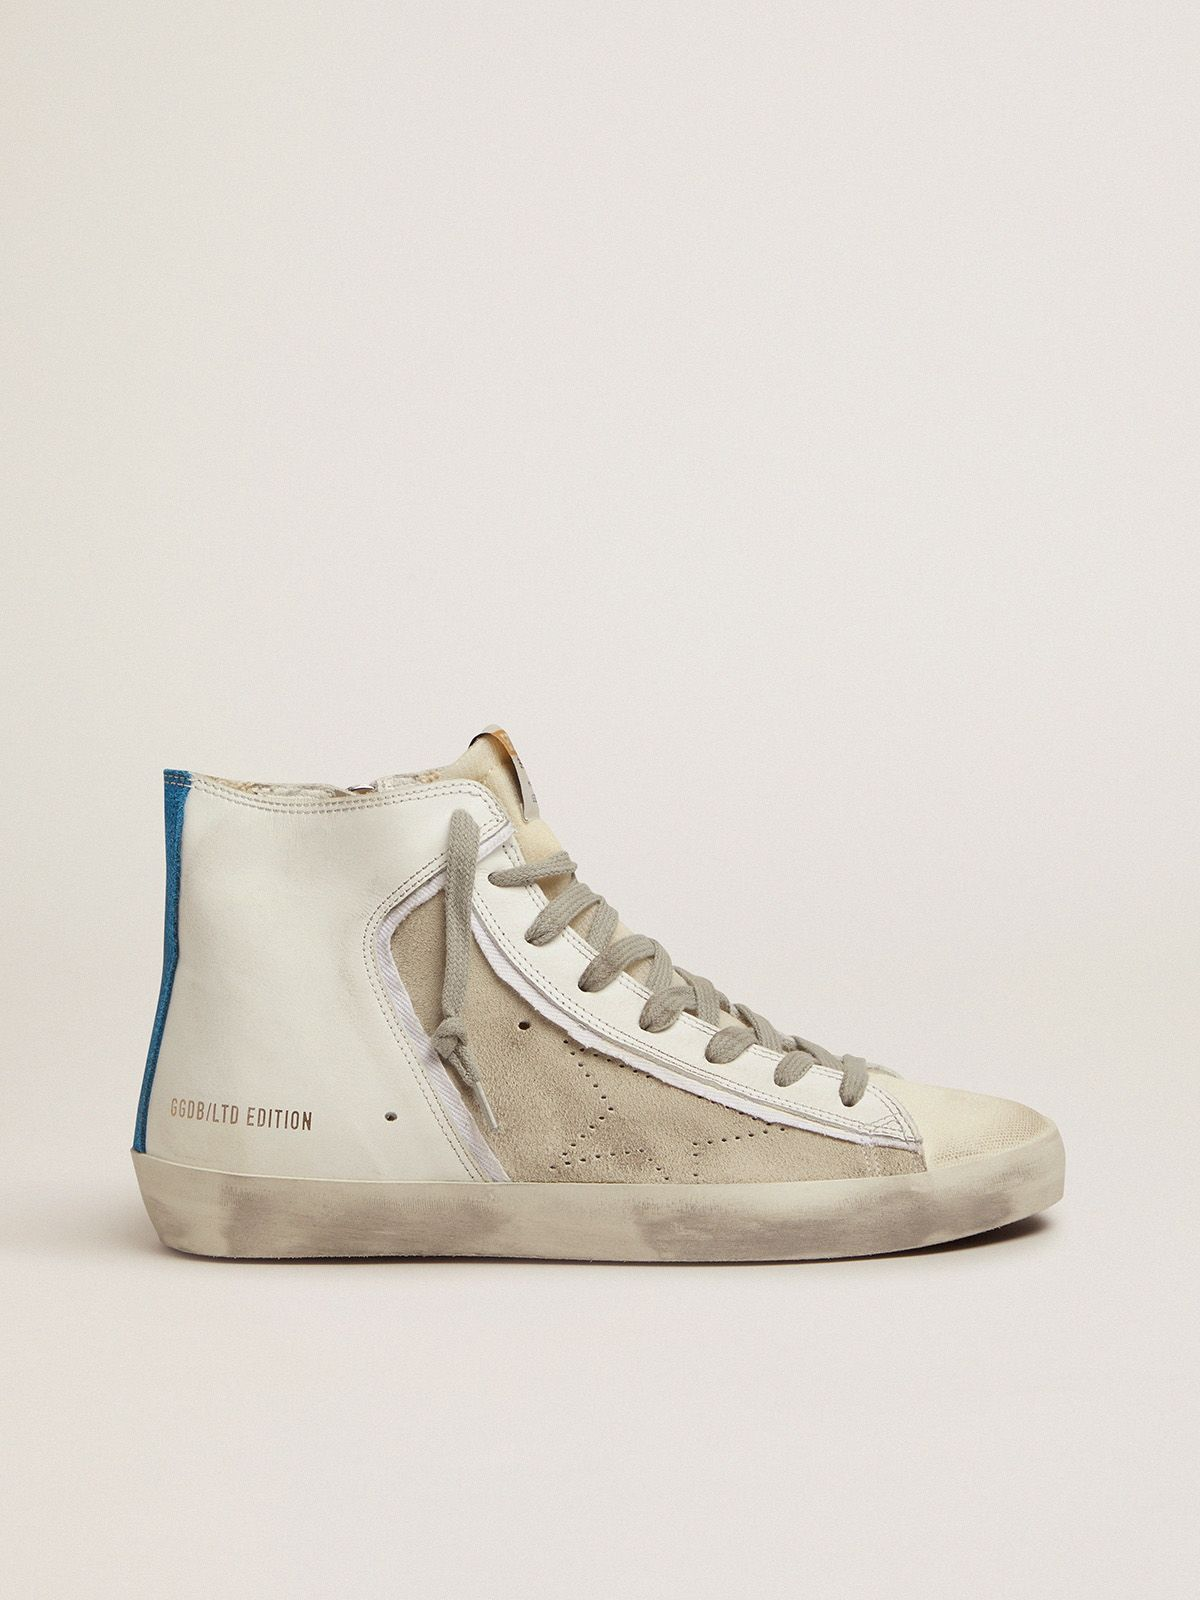 Golden Goose - Limited Edition donna Francy bianche e blu in